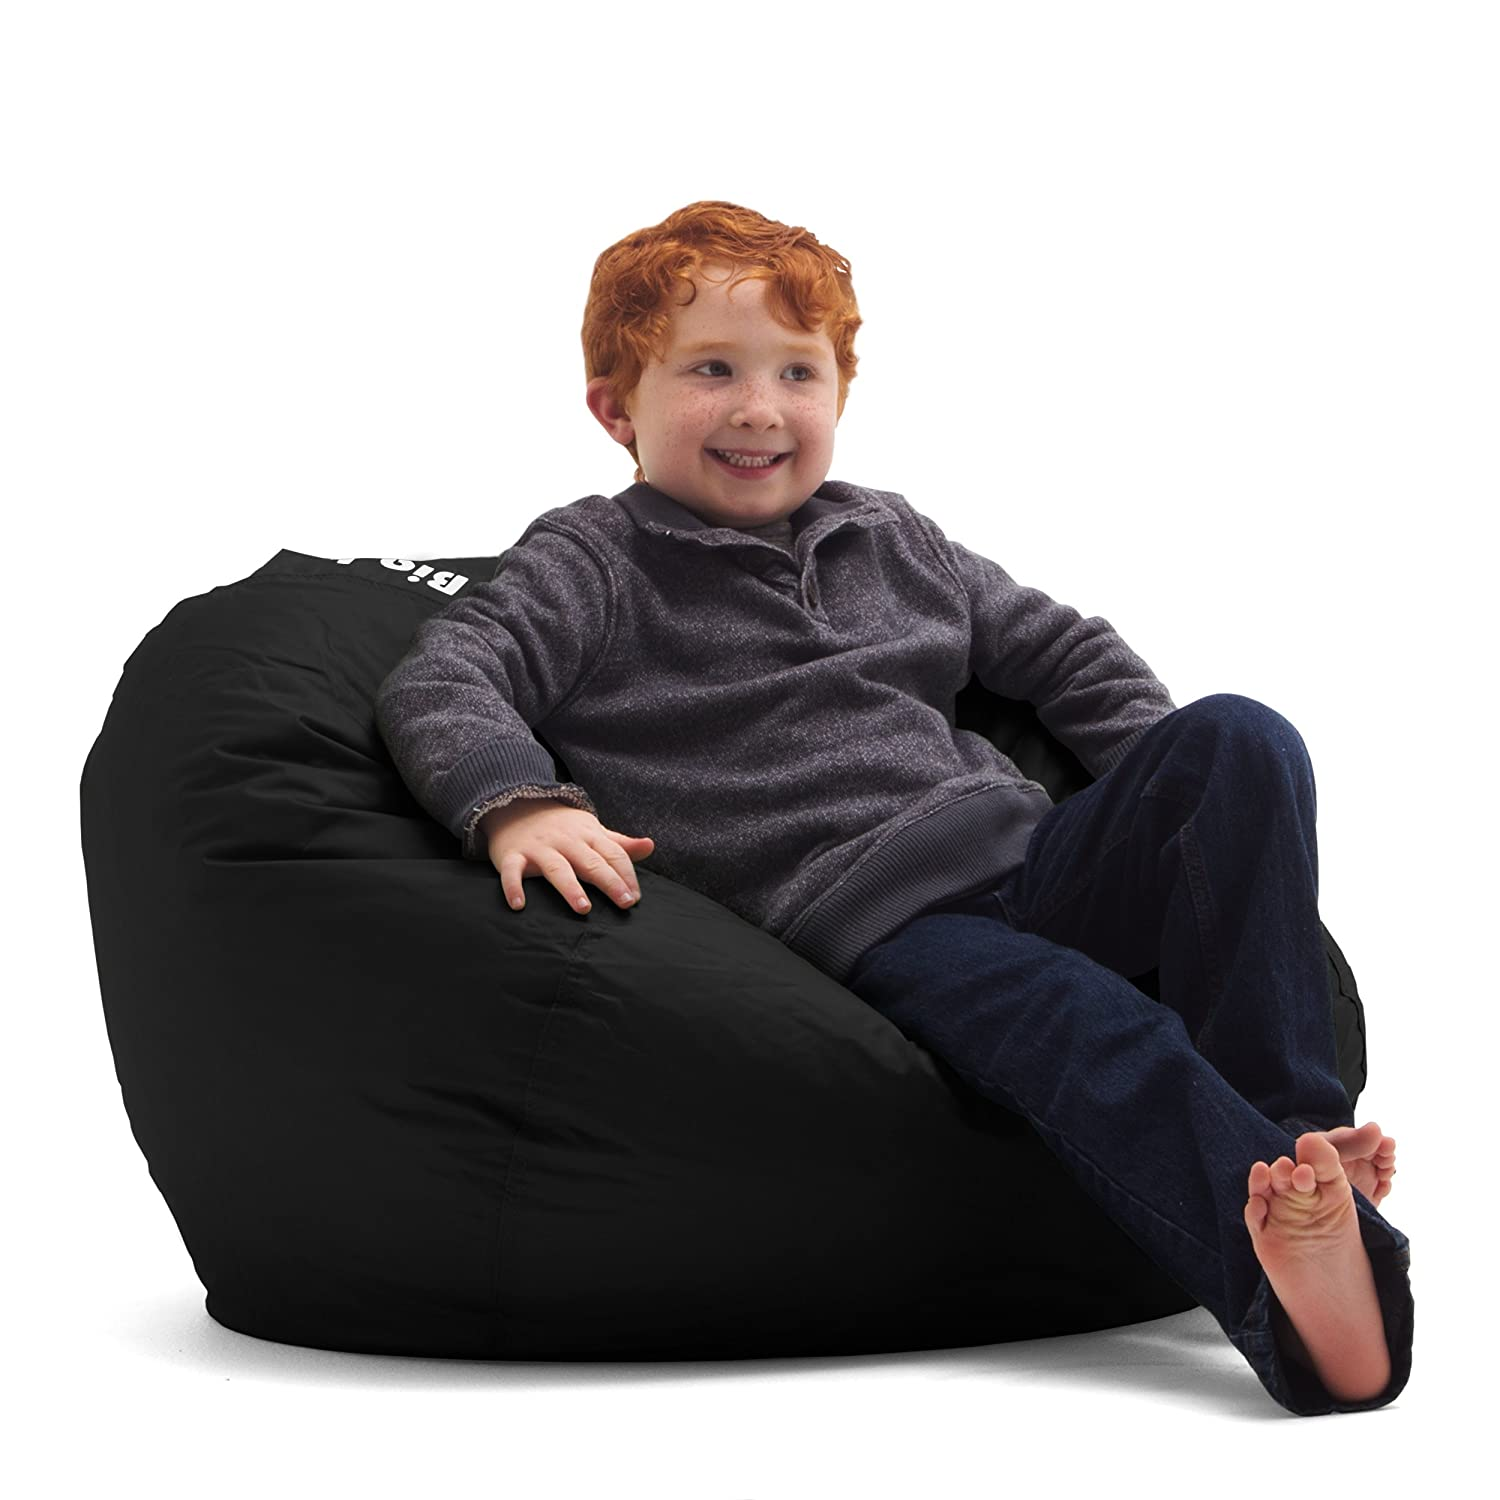 Bean bag chairs for adults - Big Joe 98 Inch Bean Bag Limo